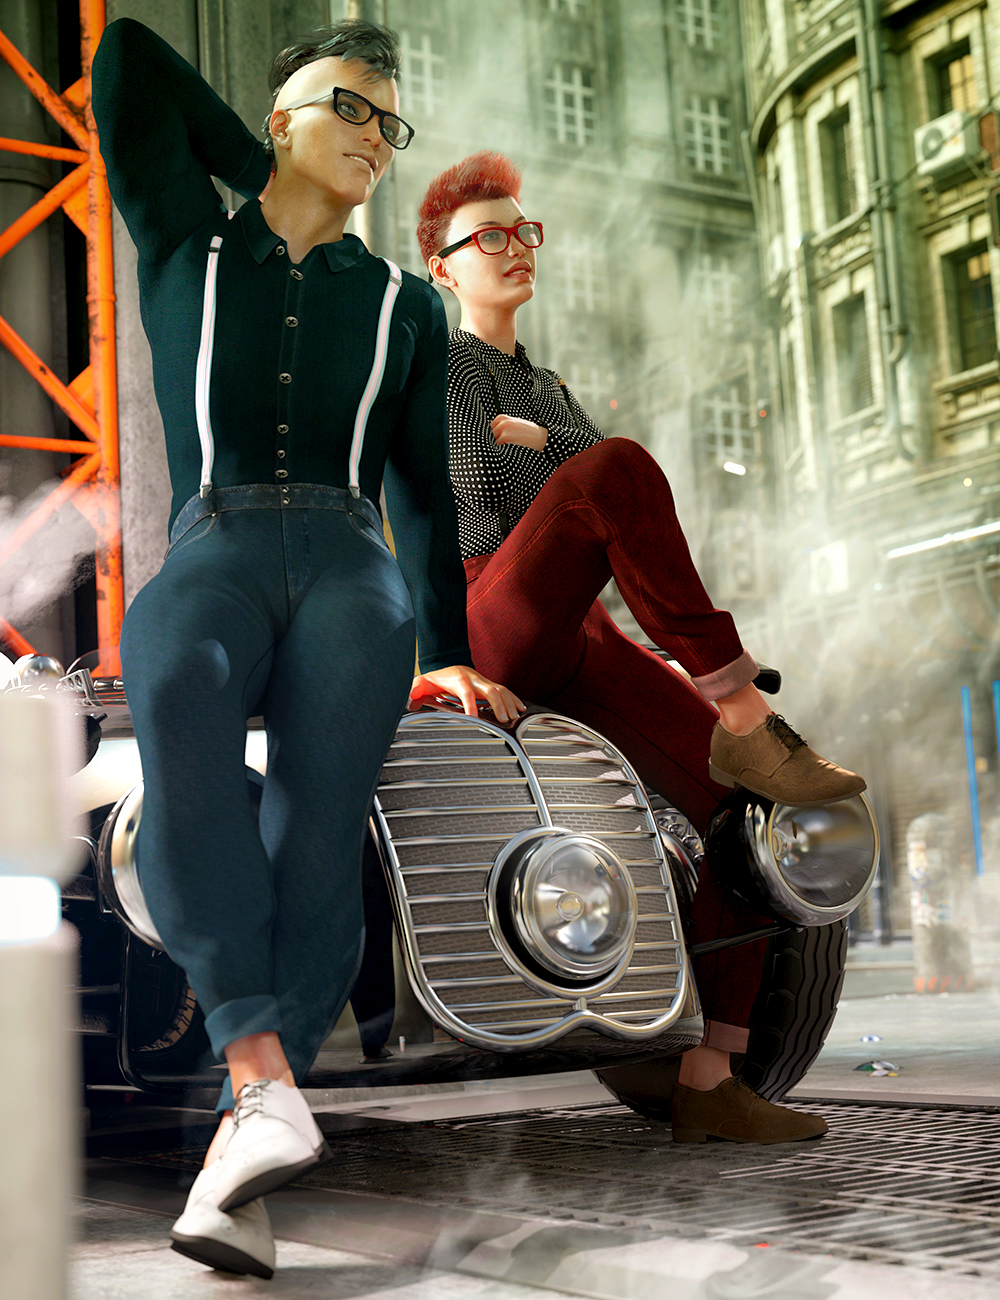 dForce Style Goals Outfit Textures by: Arien, 3D Models by Daz 3D